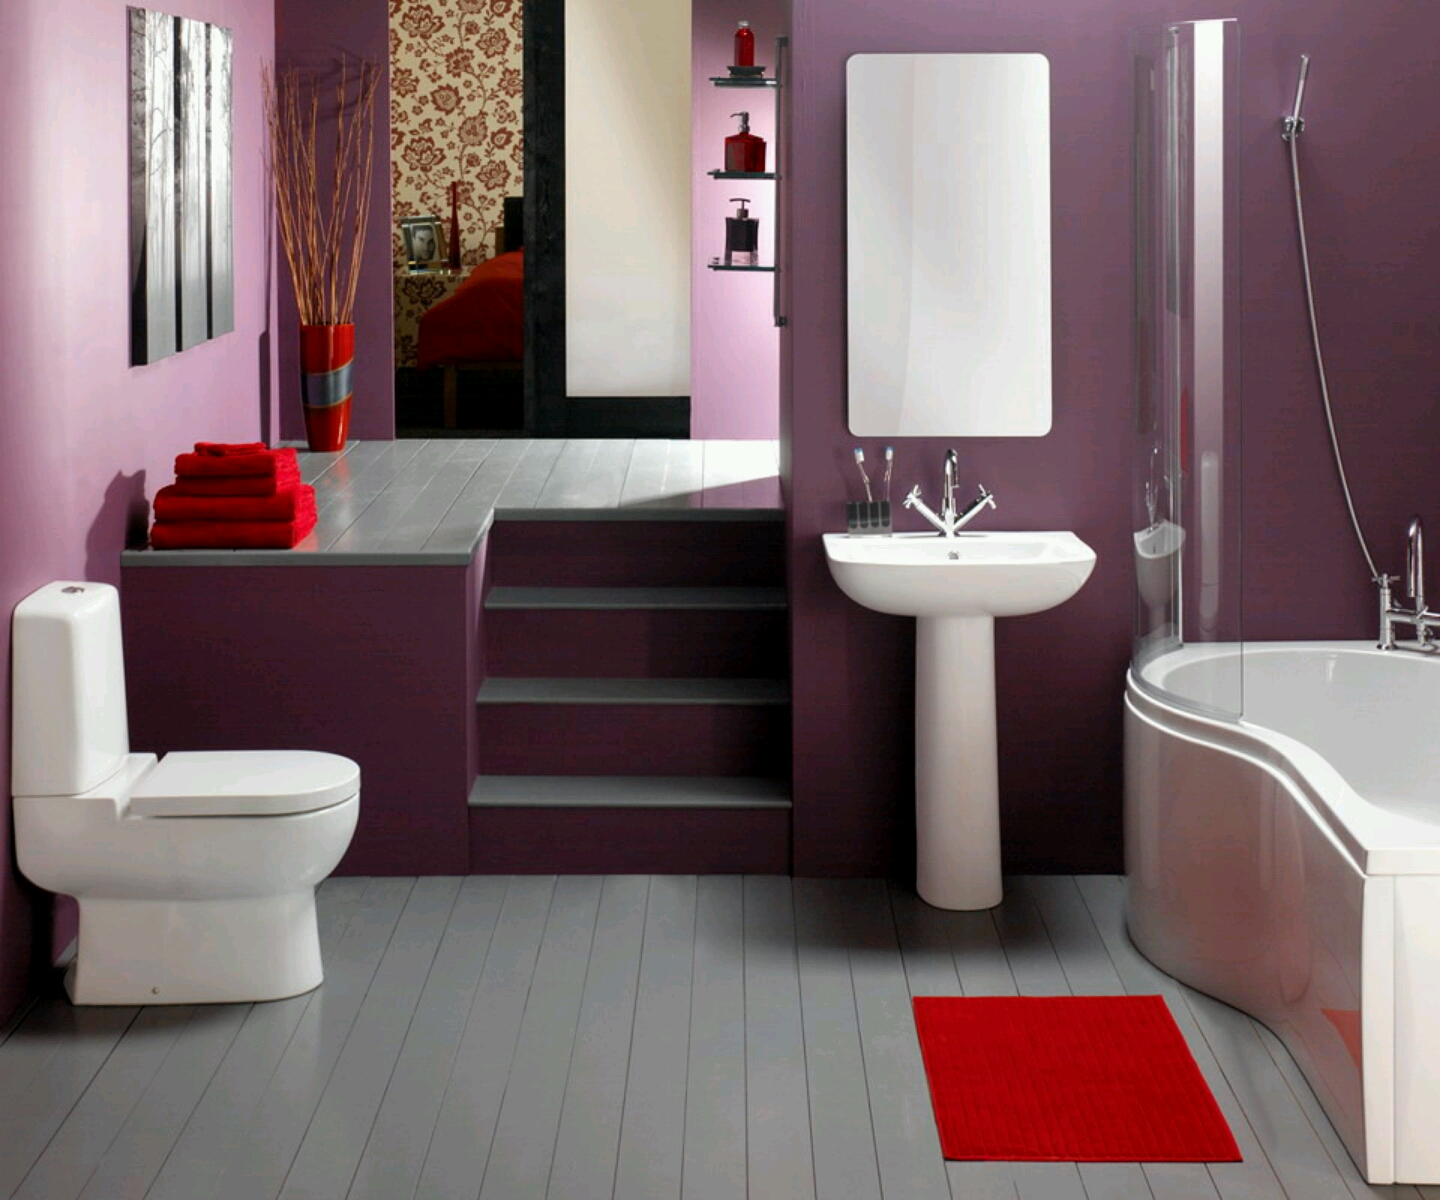 New home designs latest luxury modern bathrooms designs for Modern interior design colors